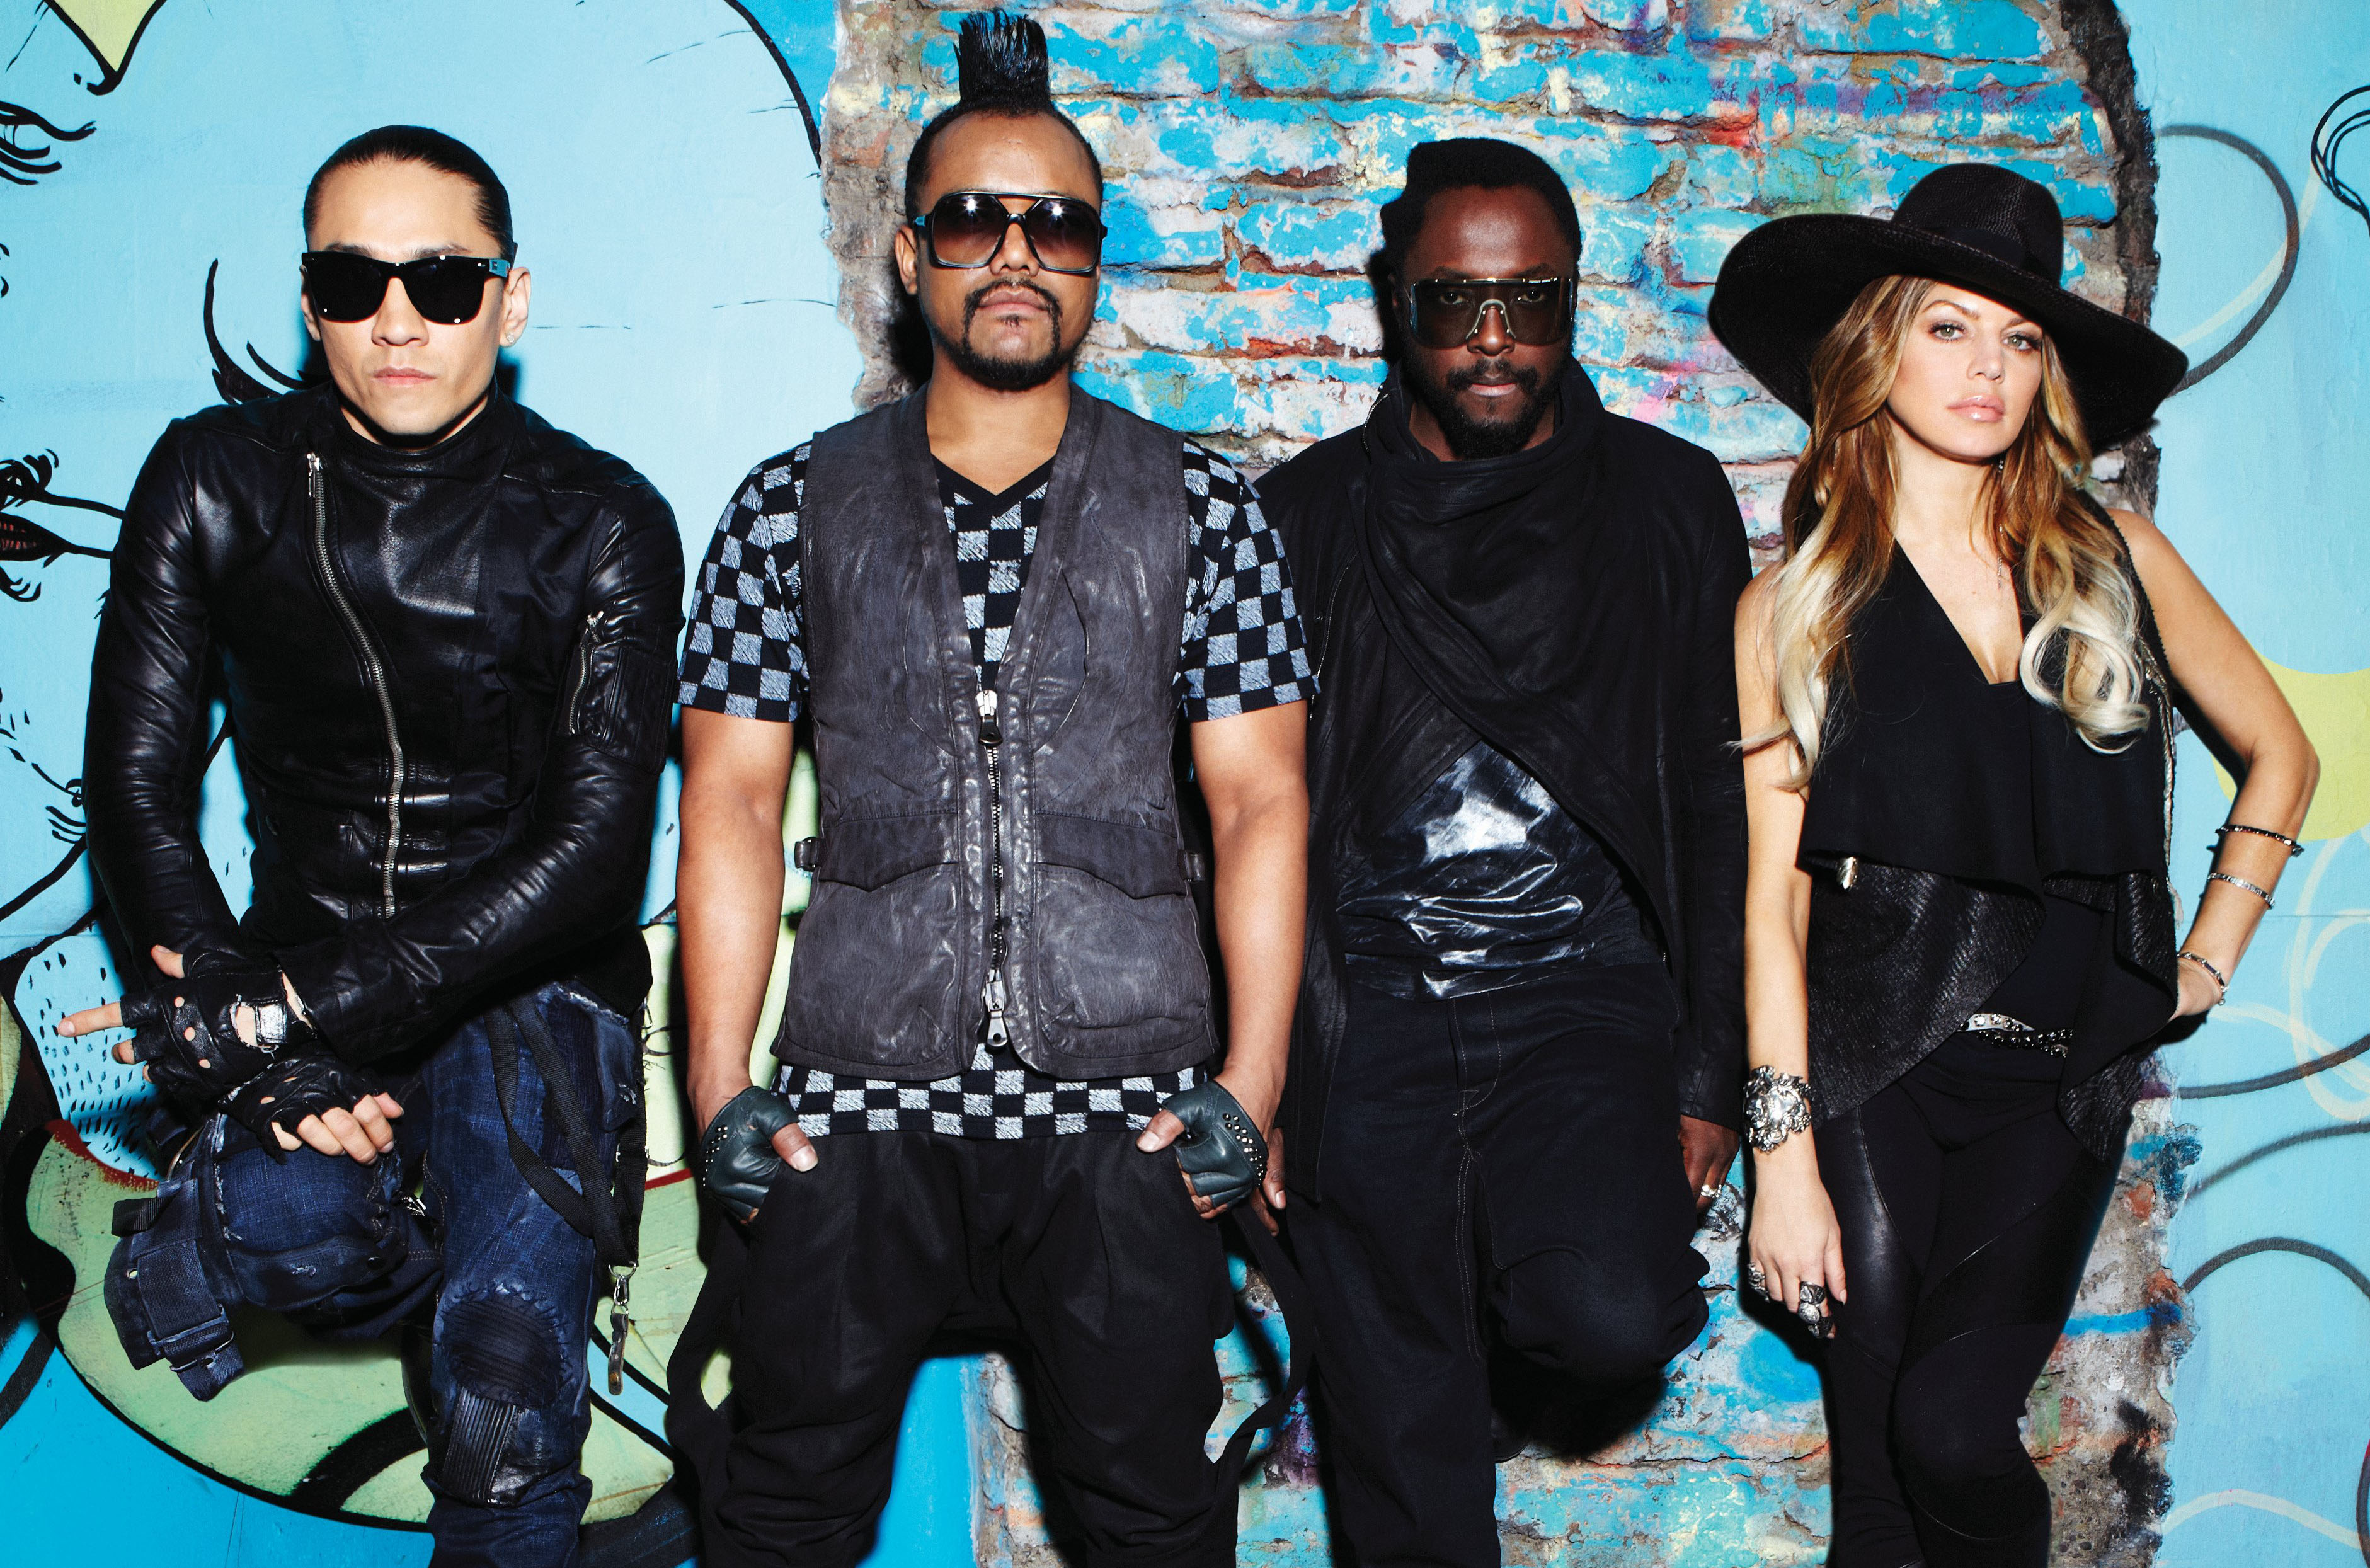 Nice wallpapers The Black Eyed Peas 3762x2489px